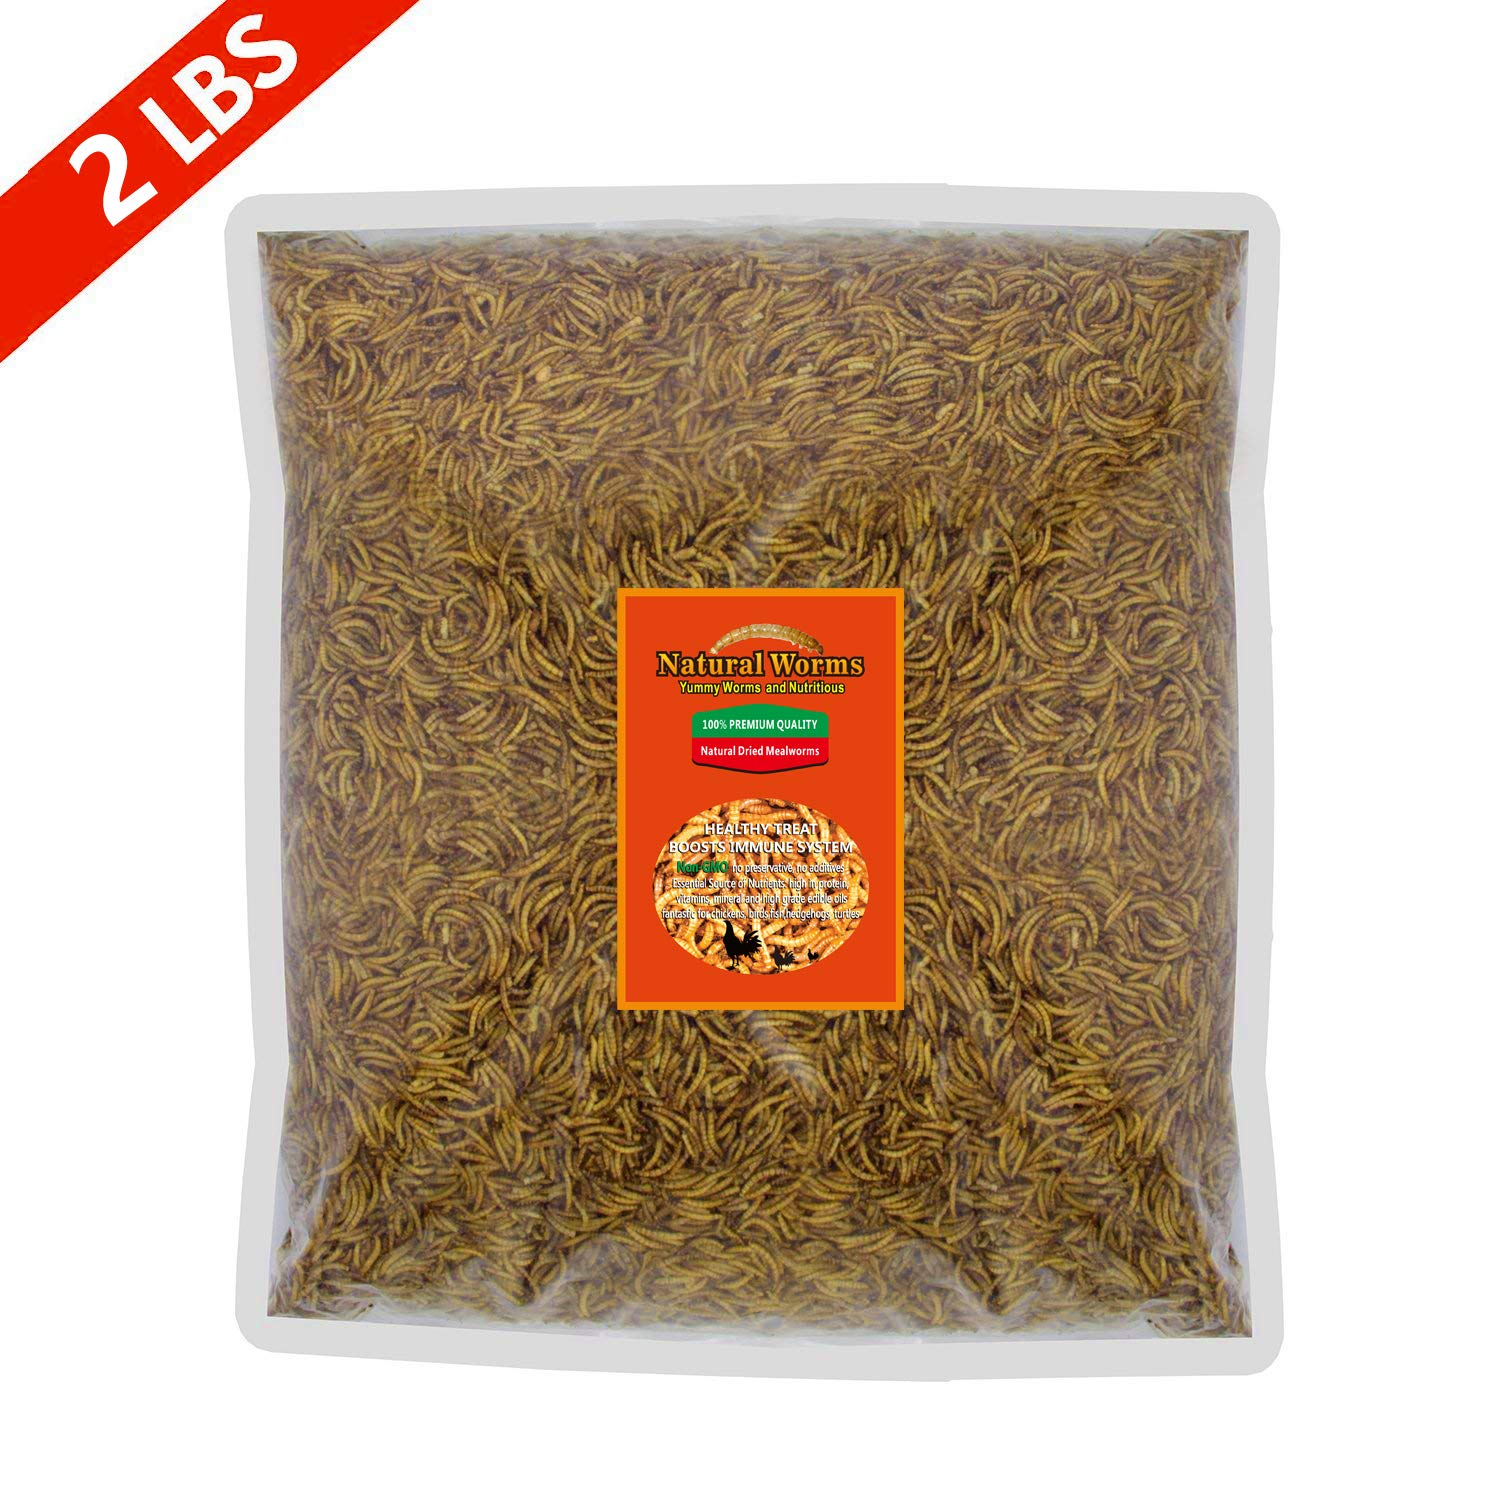 FROLIC WINGS 2 lbs Mealworms, 100 Percent Non-GMO Dried Delicious Mealworms Treats for Chickens, Wild Birds, Fish, Reptiles by FROLIC WINGS